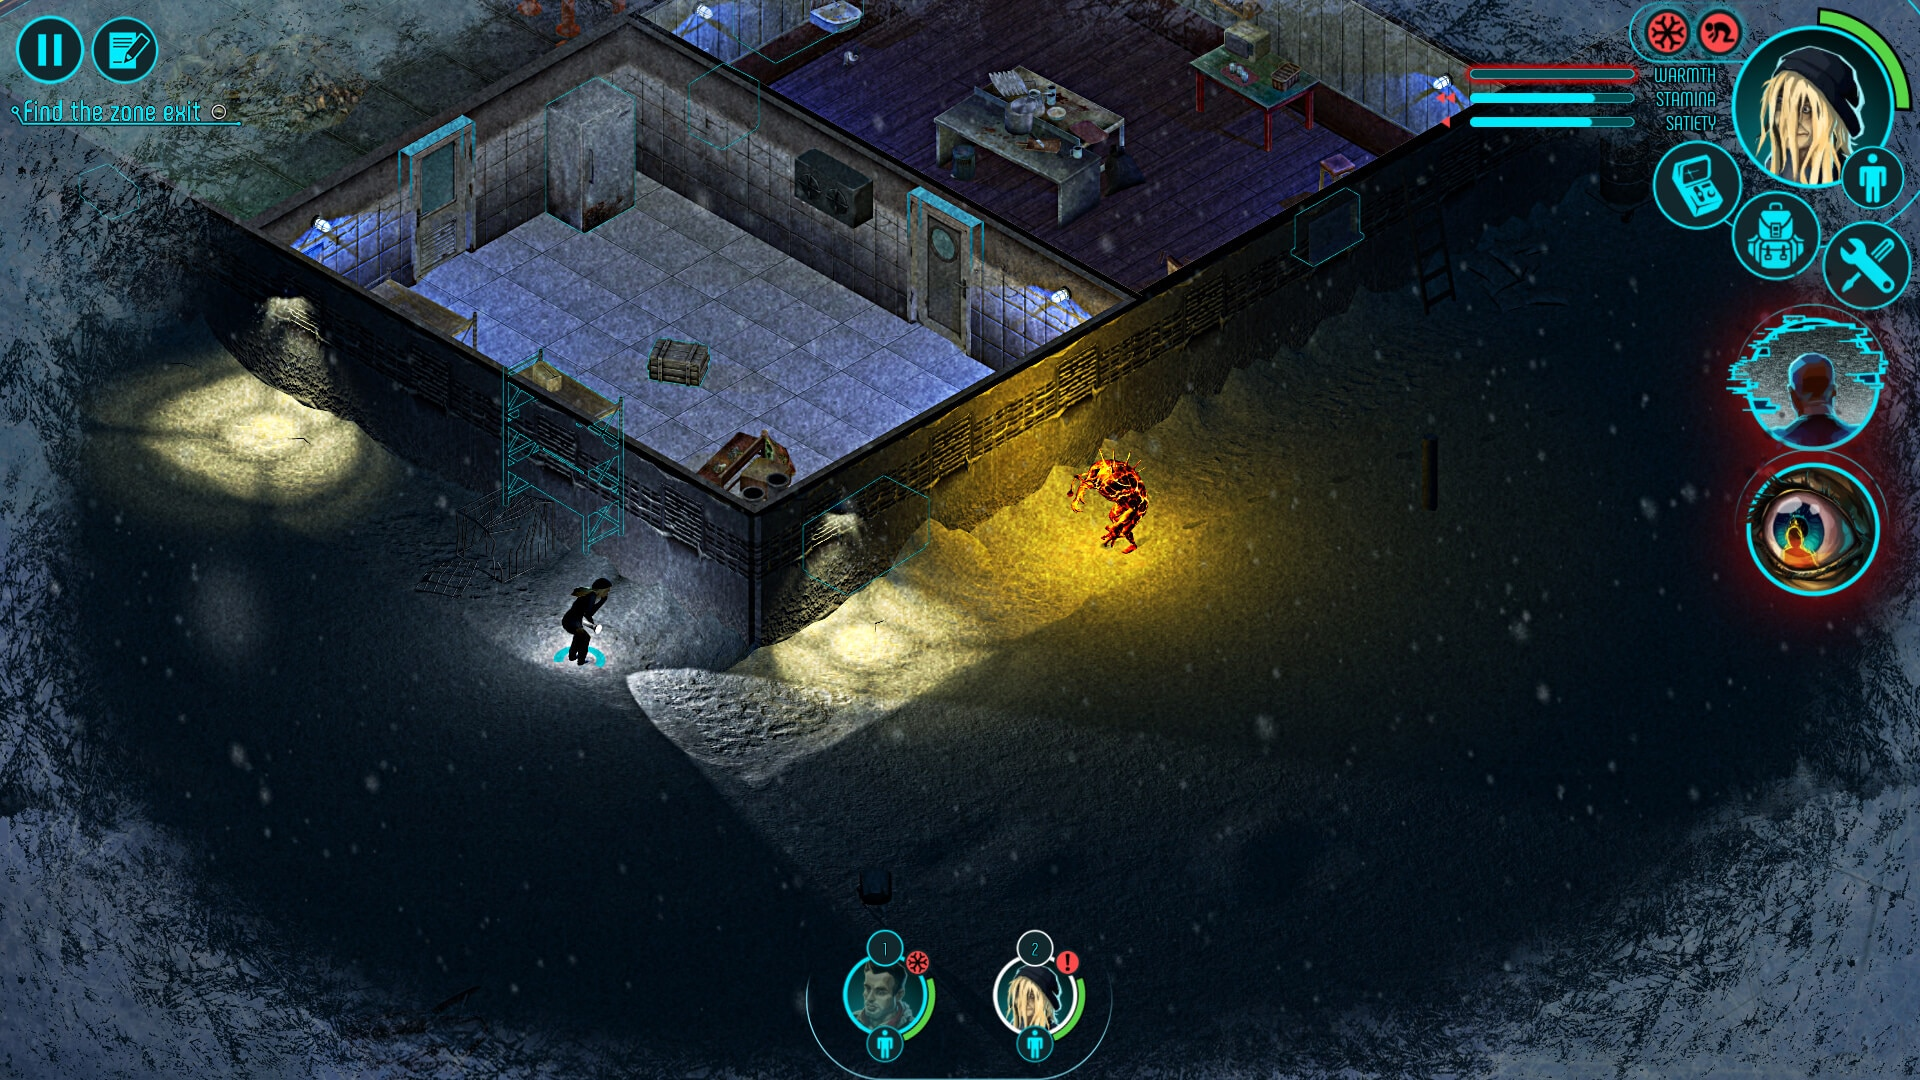 distrust4 1 - The Thing-Inspired Game Distrust Gets a Demo